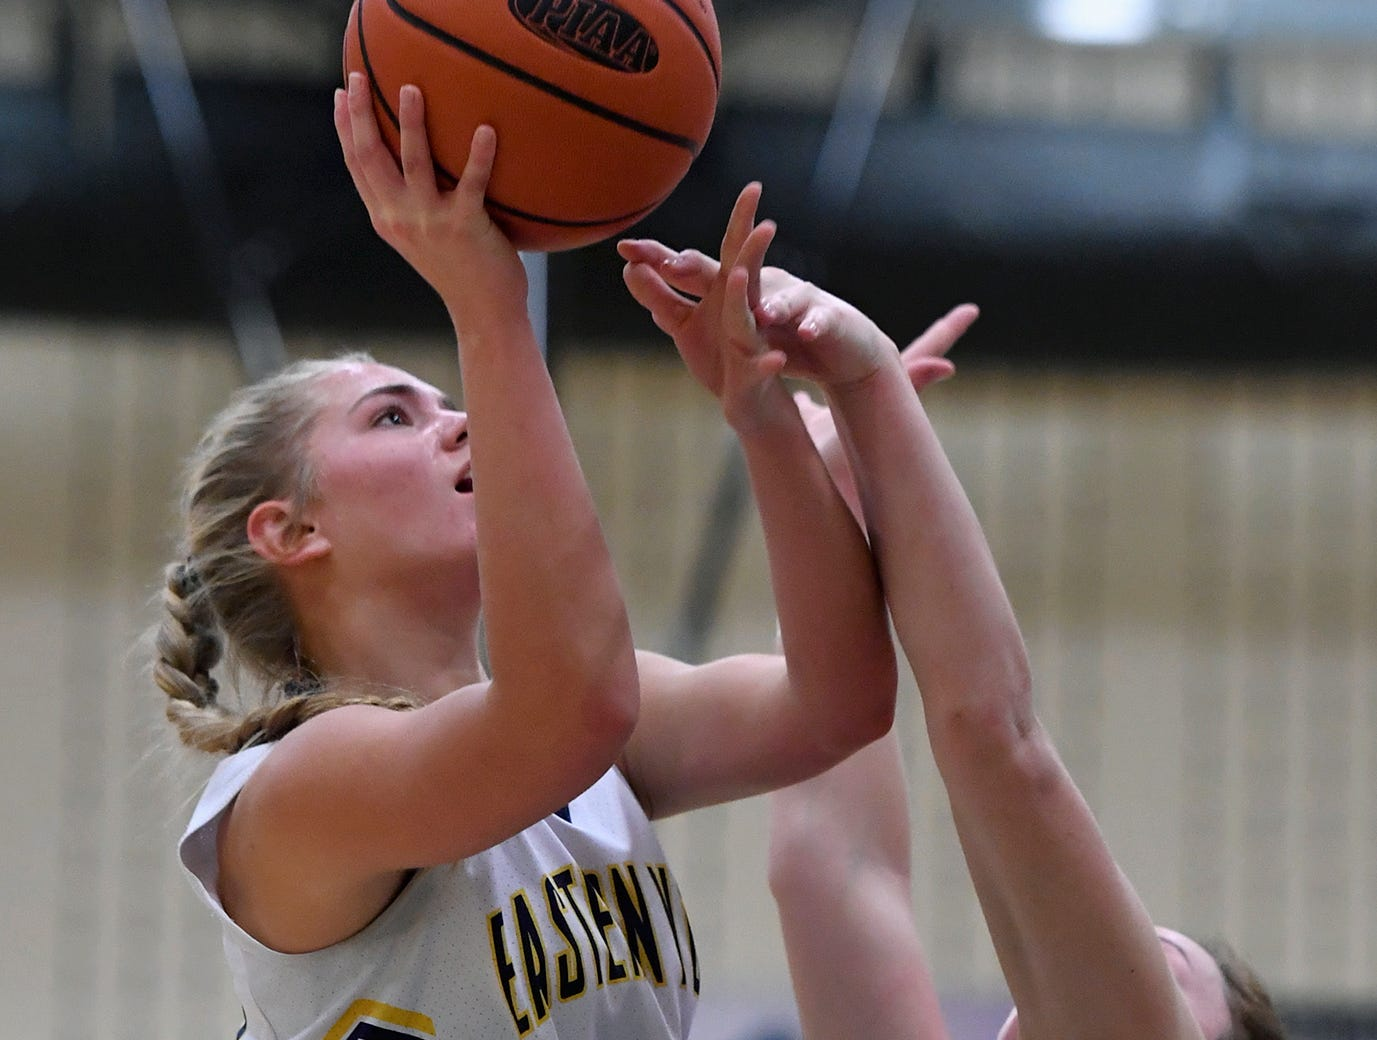 Addi Malone of Eastern York is fouled by Maddy McMaster of South Western on her way to the basket, Monday, January 7, 2019. John A. Pavoncello photo